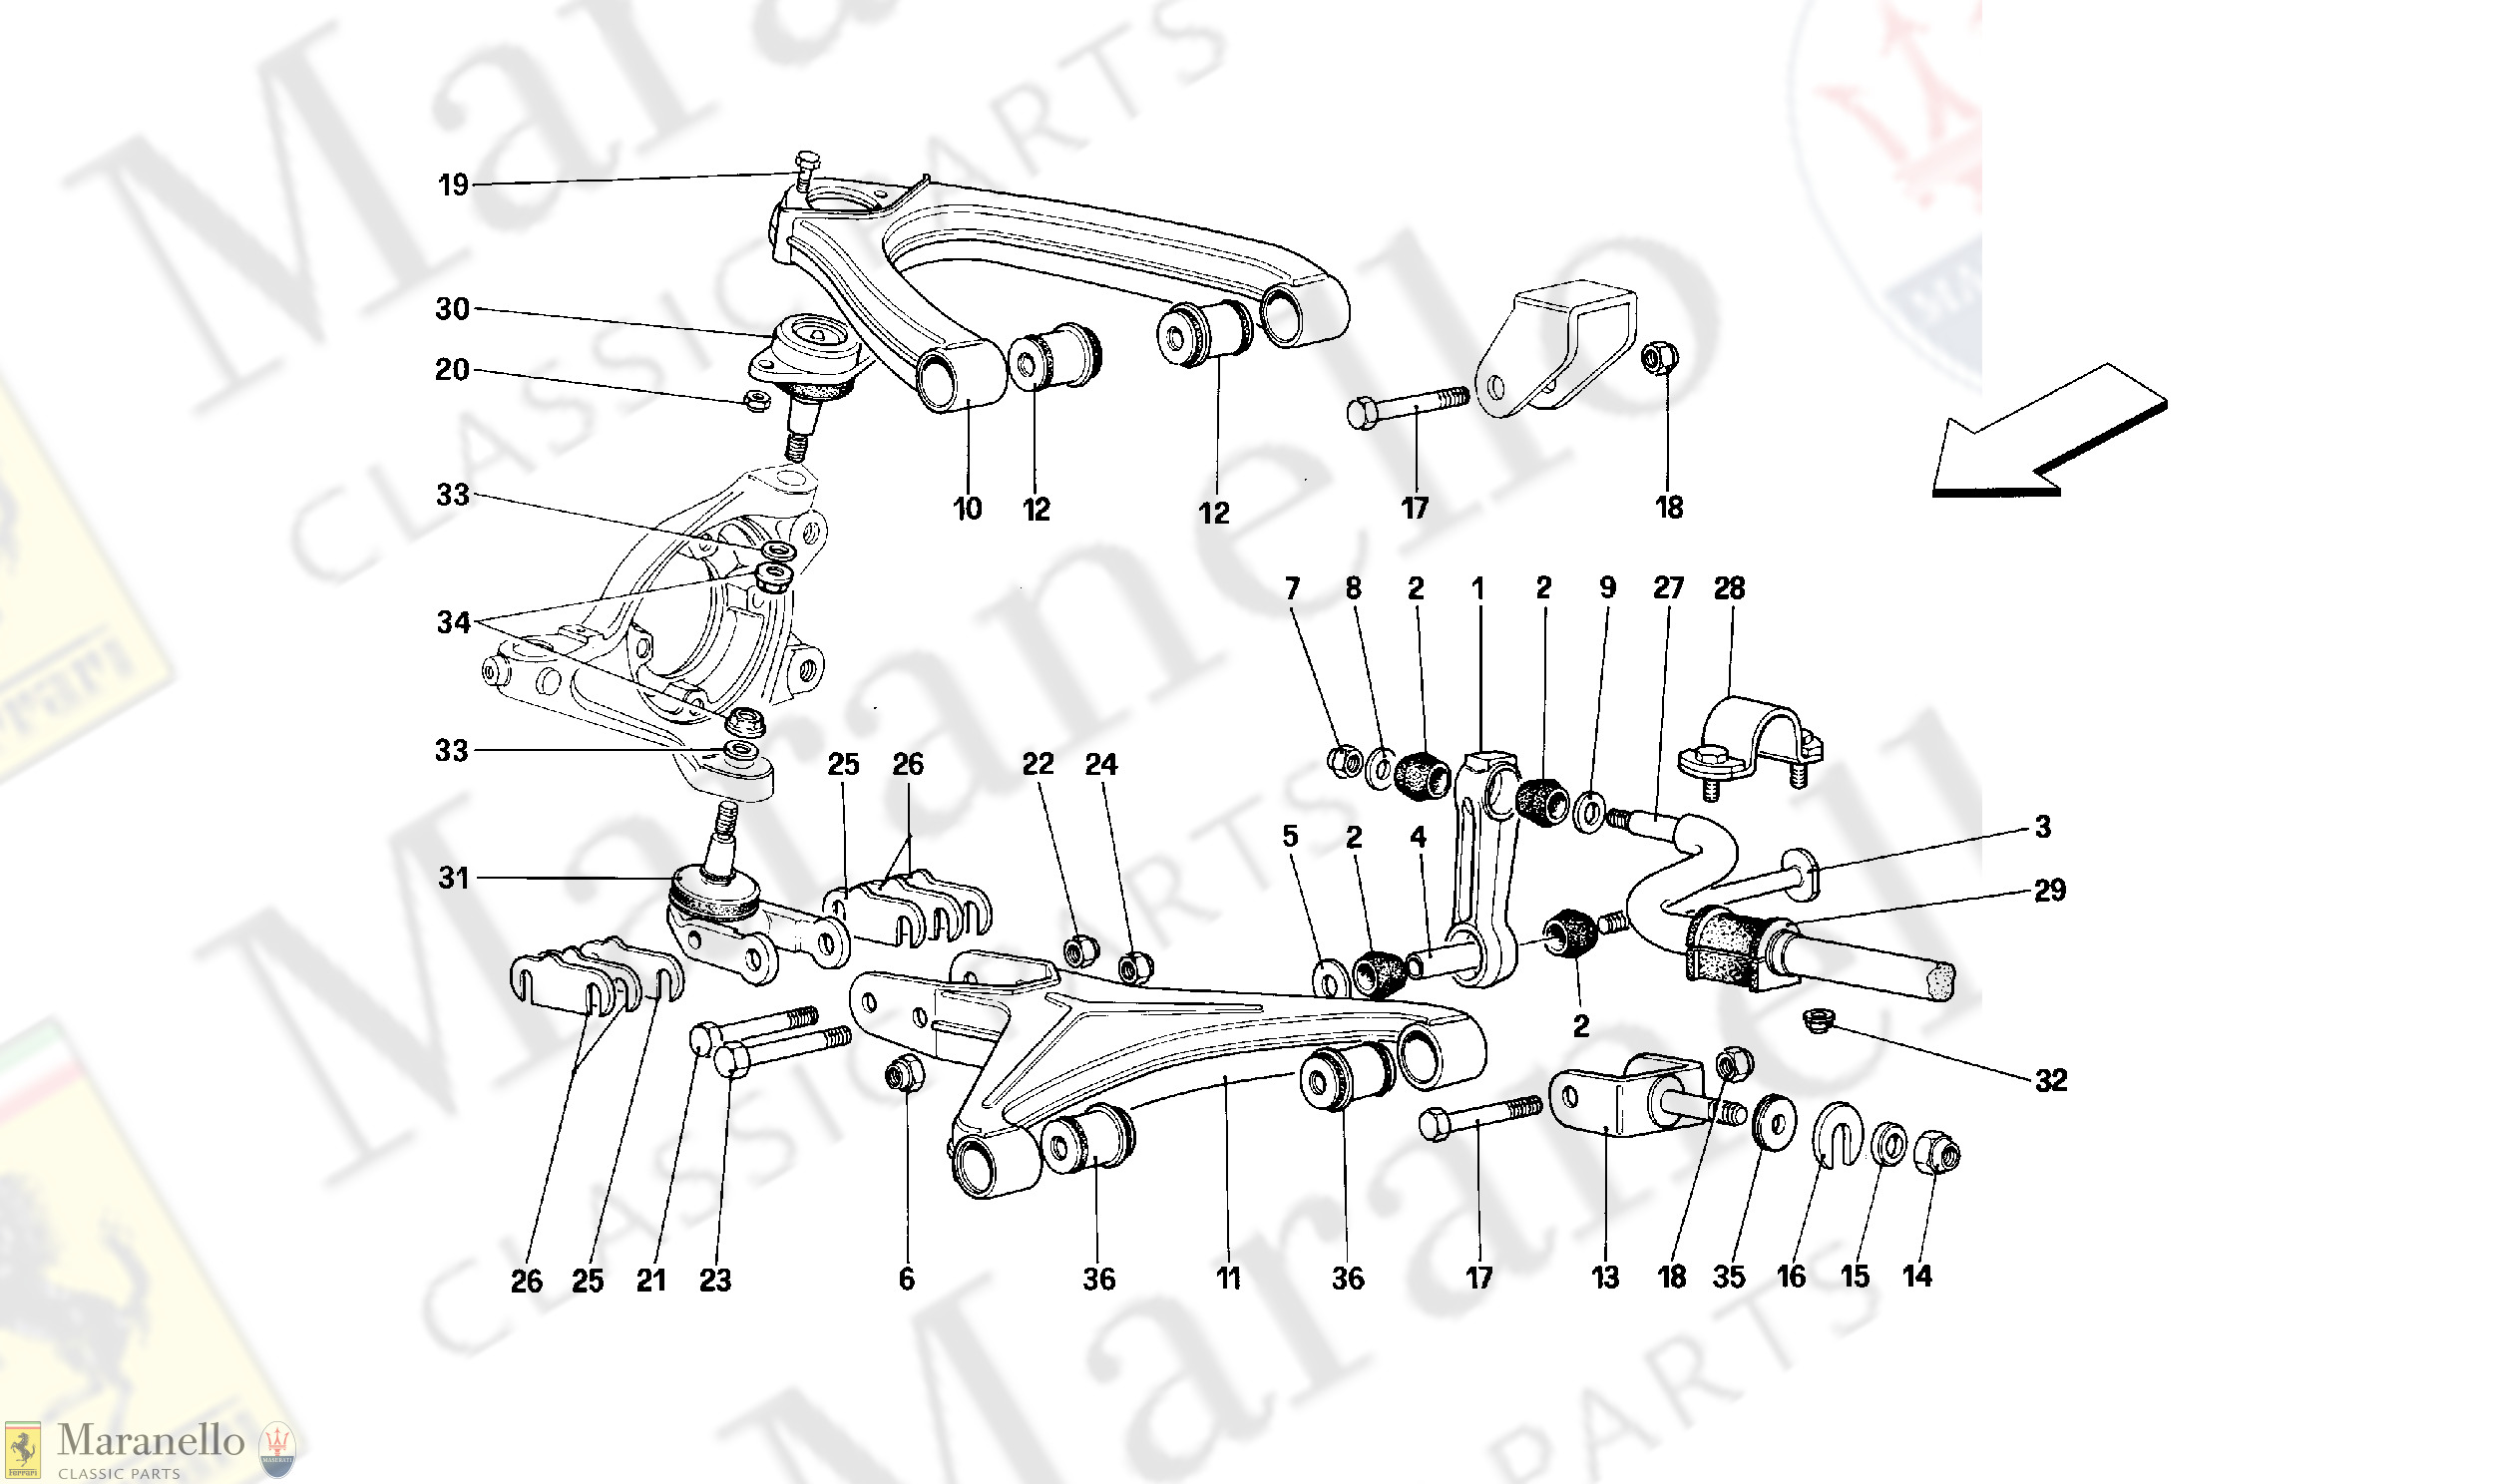 047 - Front Suspension - Wishbones